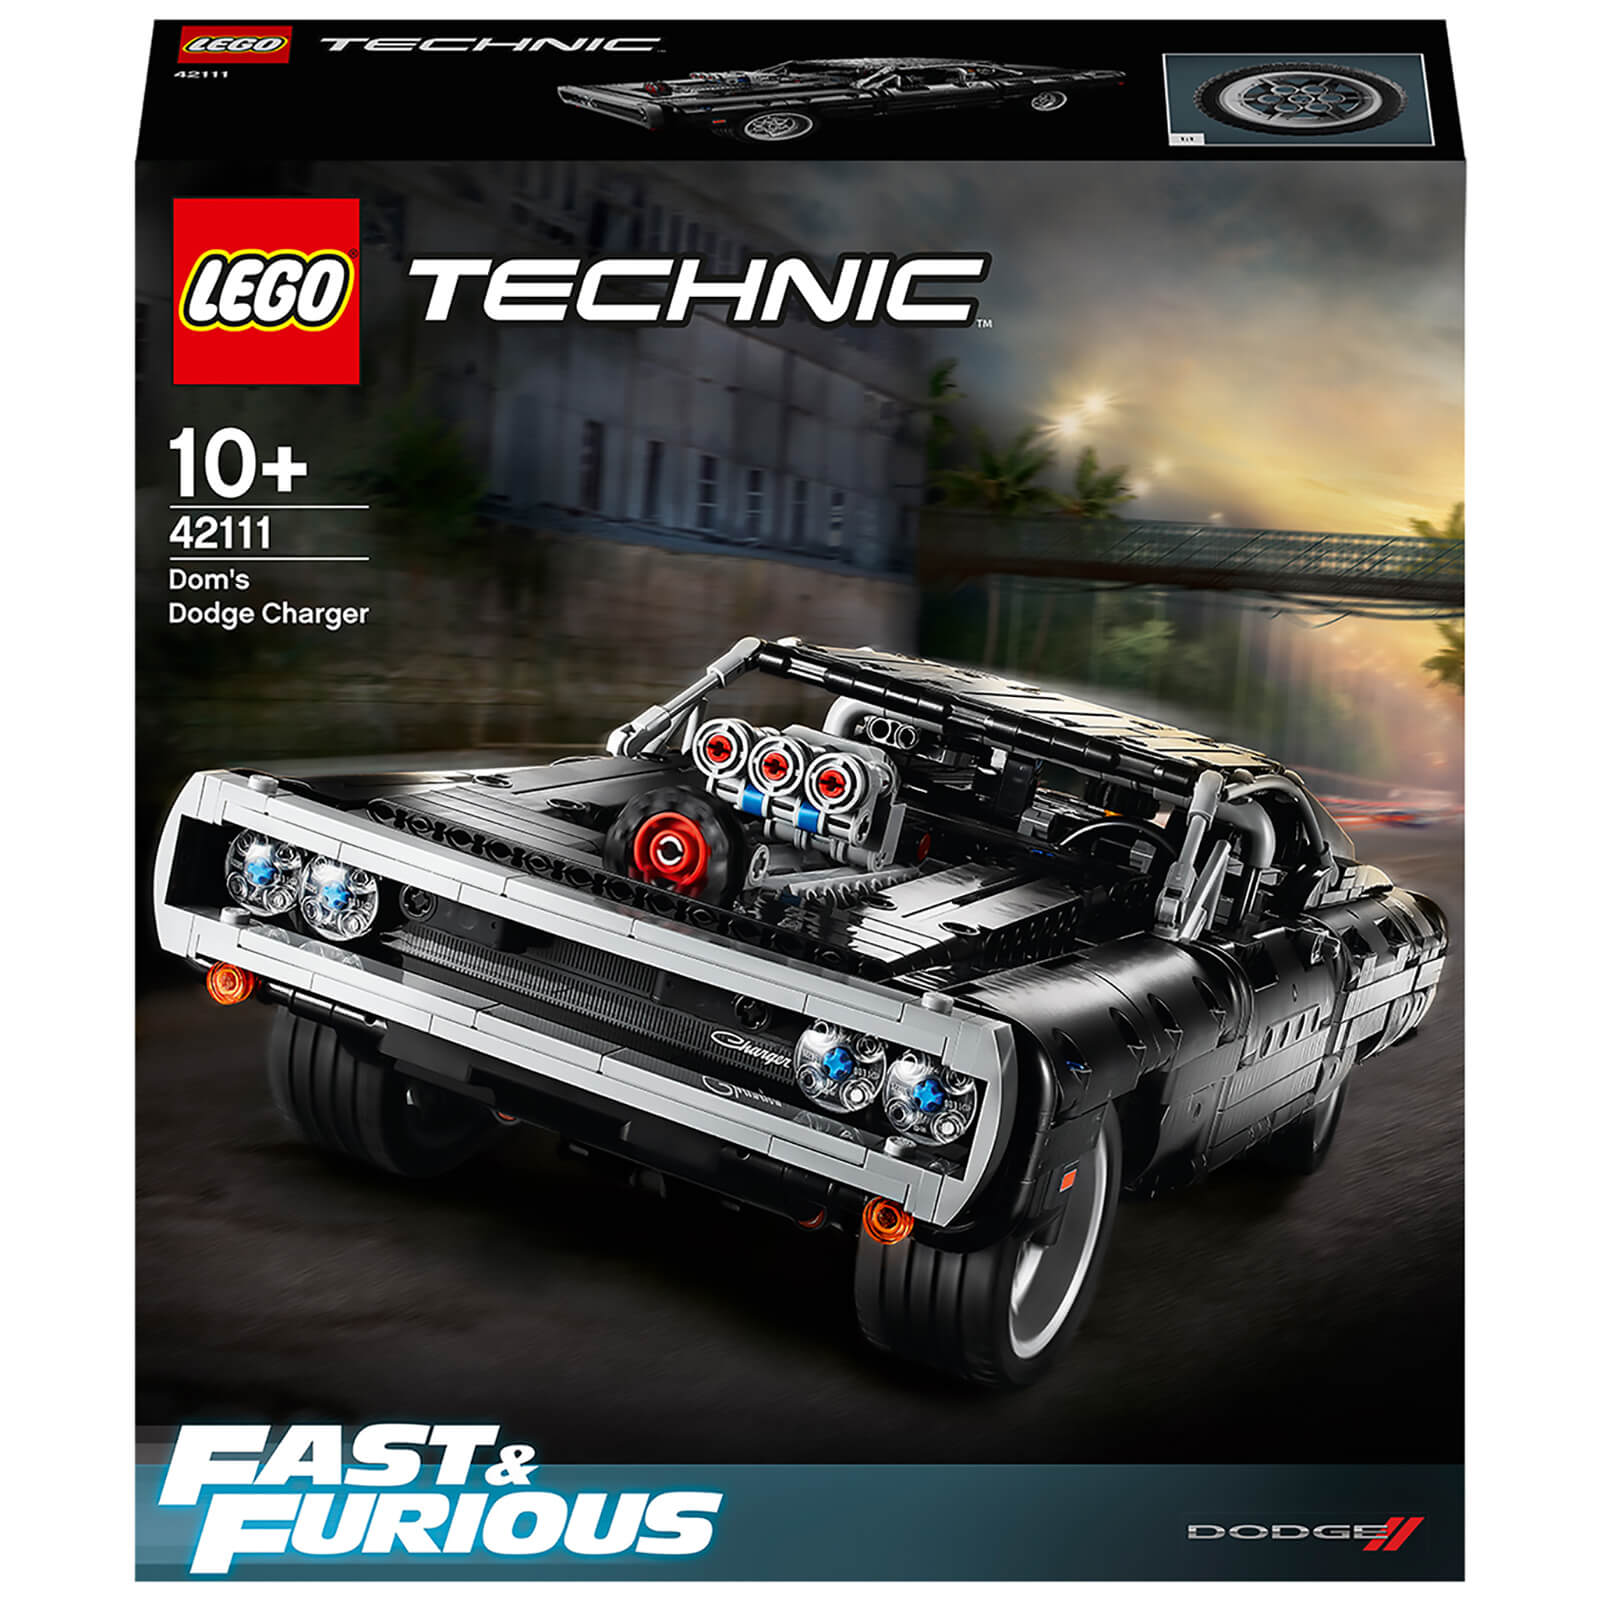 Image of LEGO Technic: Fast & Furious Dom's Dodge Charger Set (42111)